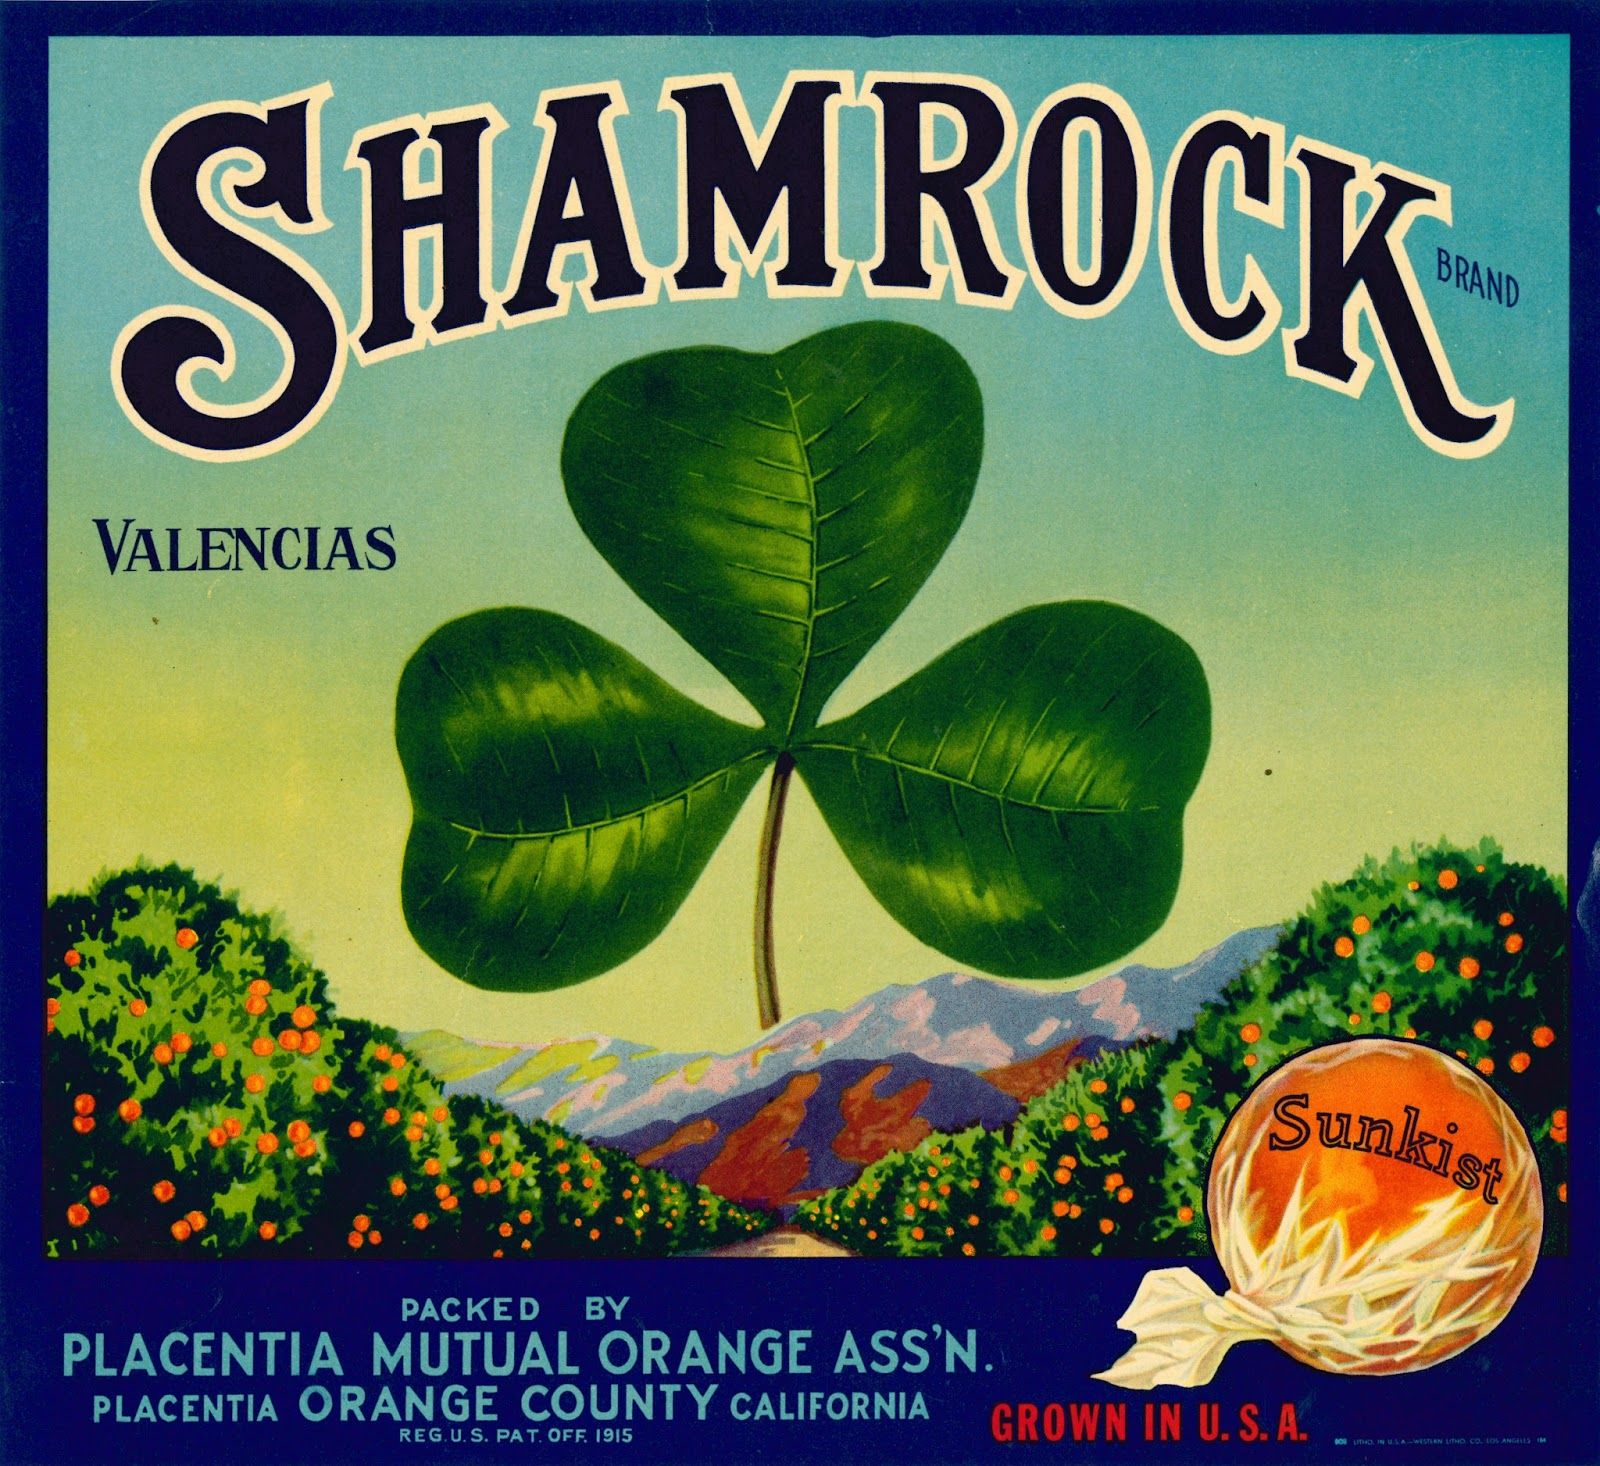 Shamrocks for a Glam Box: Placentia Mutual's Signature Brand